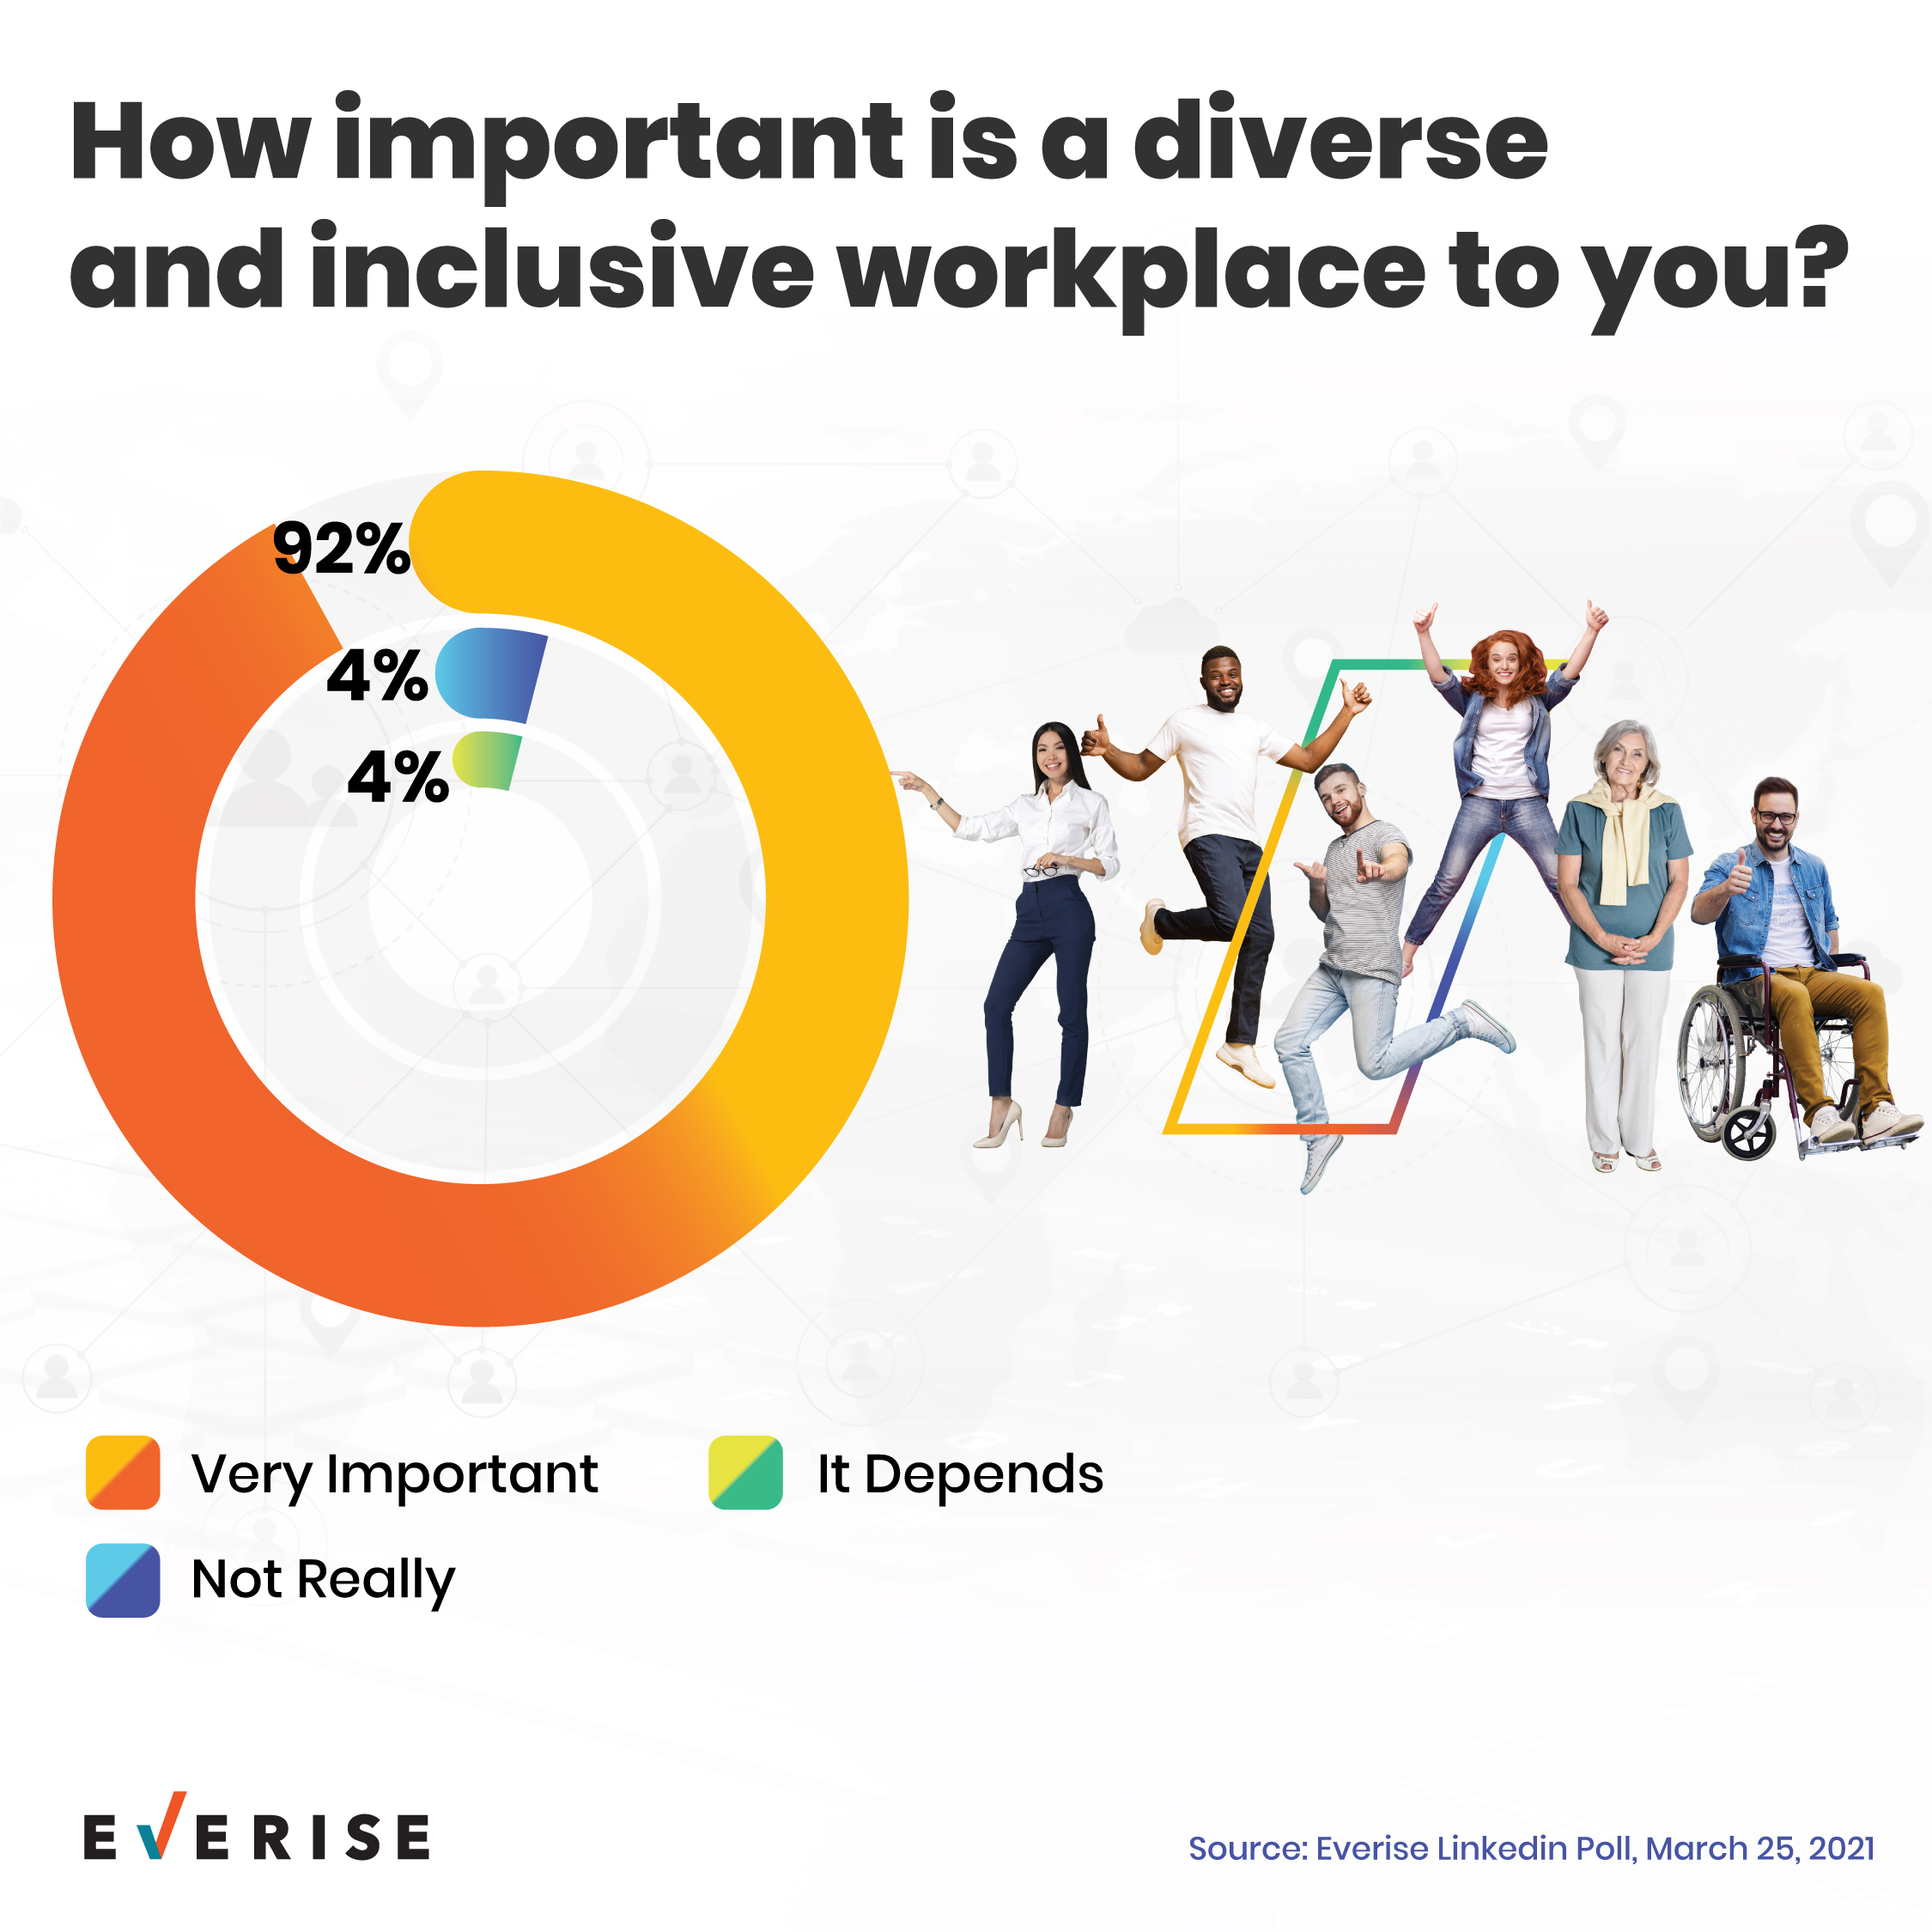 importance-of-a-divers-and-inclusive-workplace